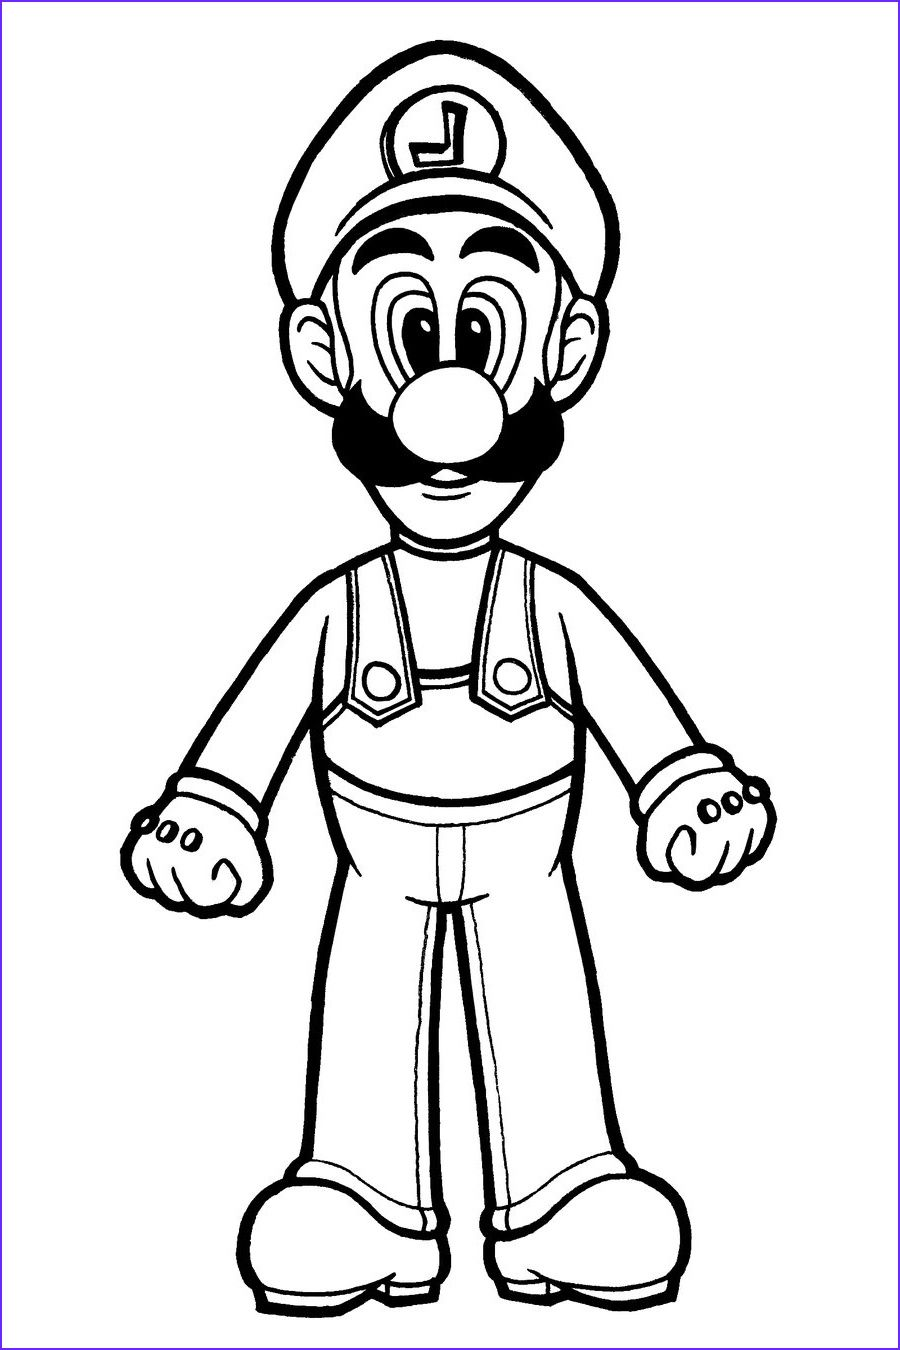 Free Printable Luigi Coloring Pages For Kids In 2020 Super Mario Coloring Pages Mario Coloring Pages Coloring Pages